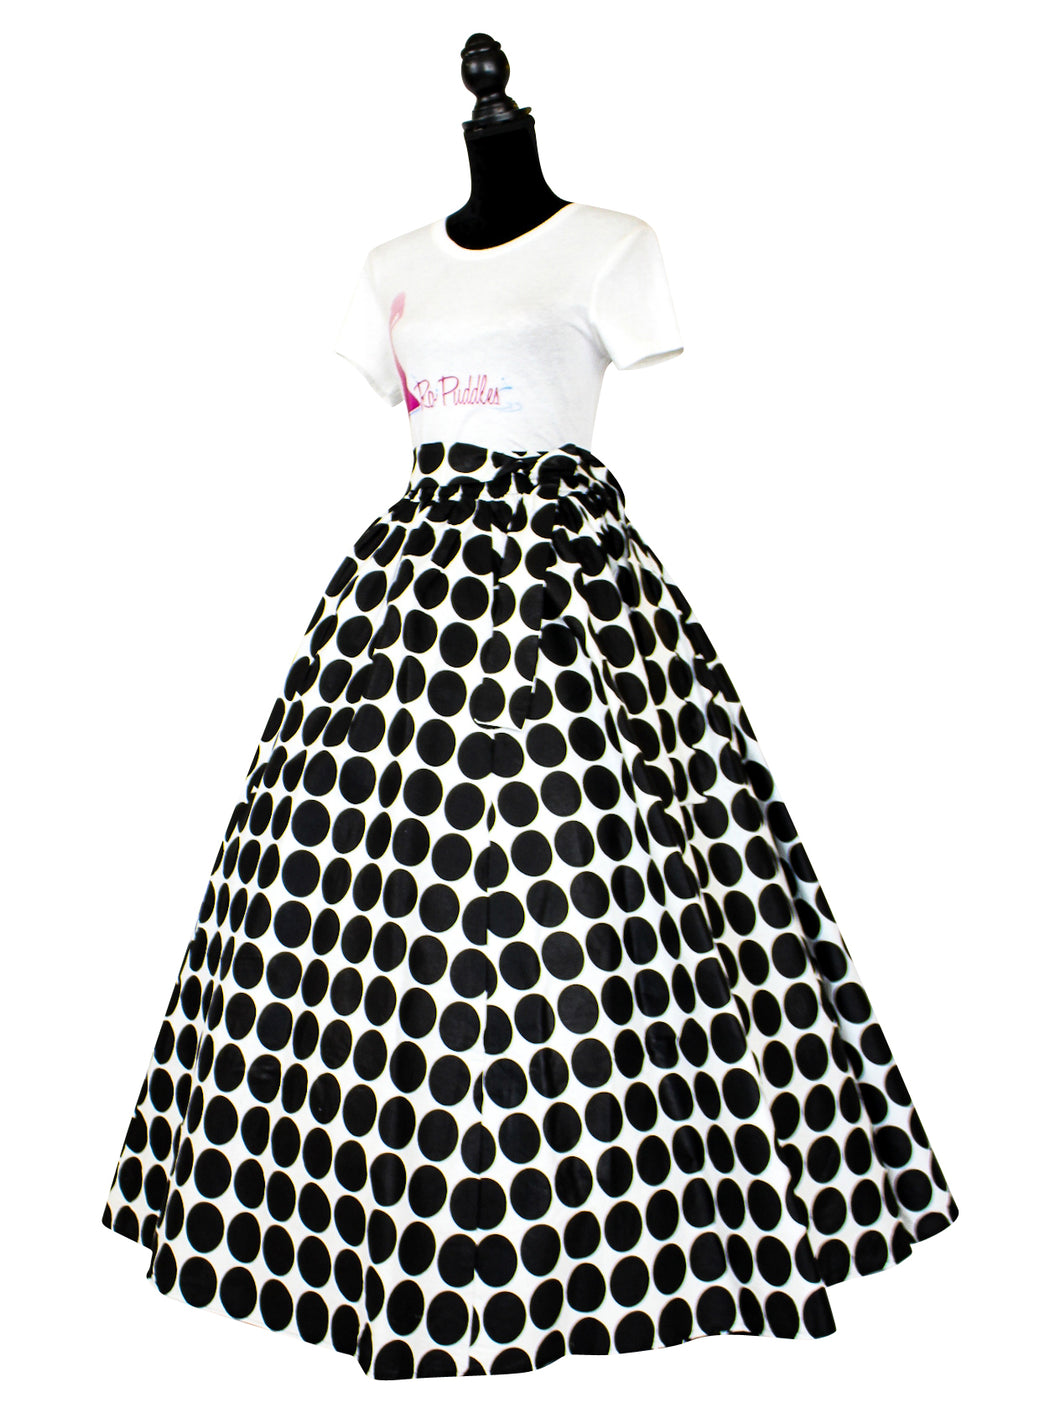 Fashions by RoPuddles African Print Black Polka Dot Skirt